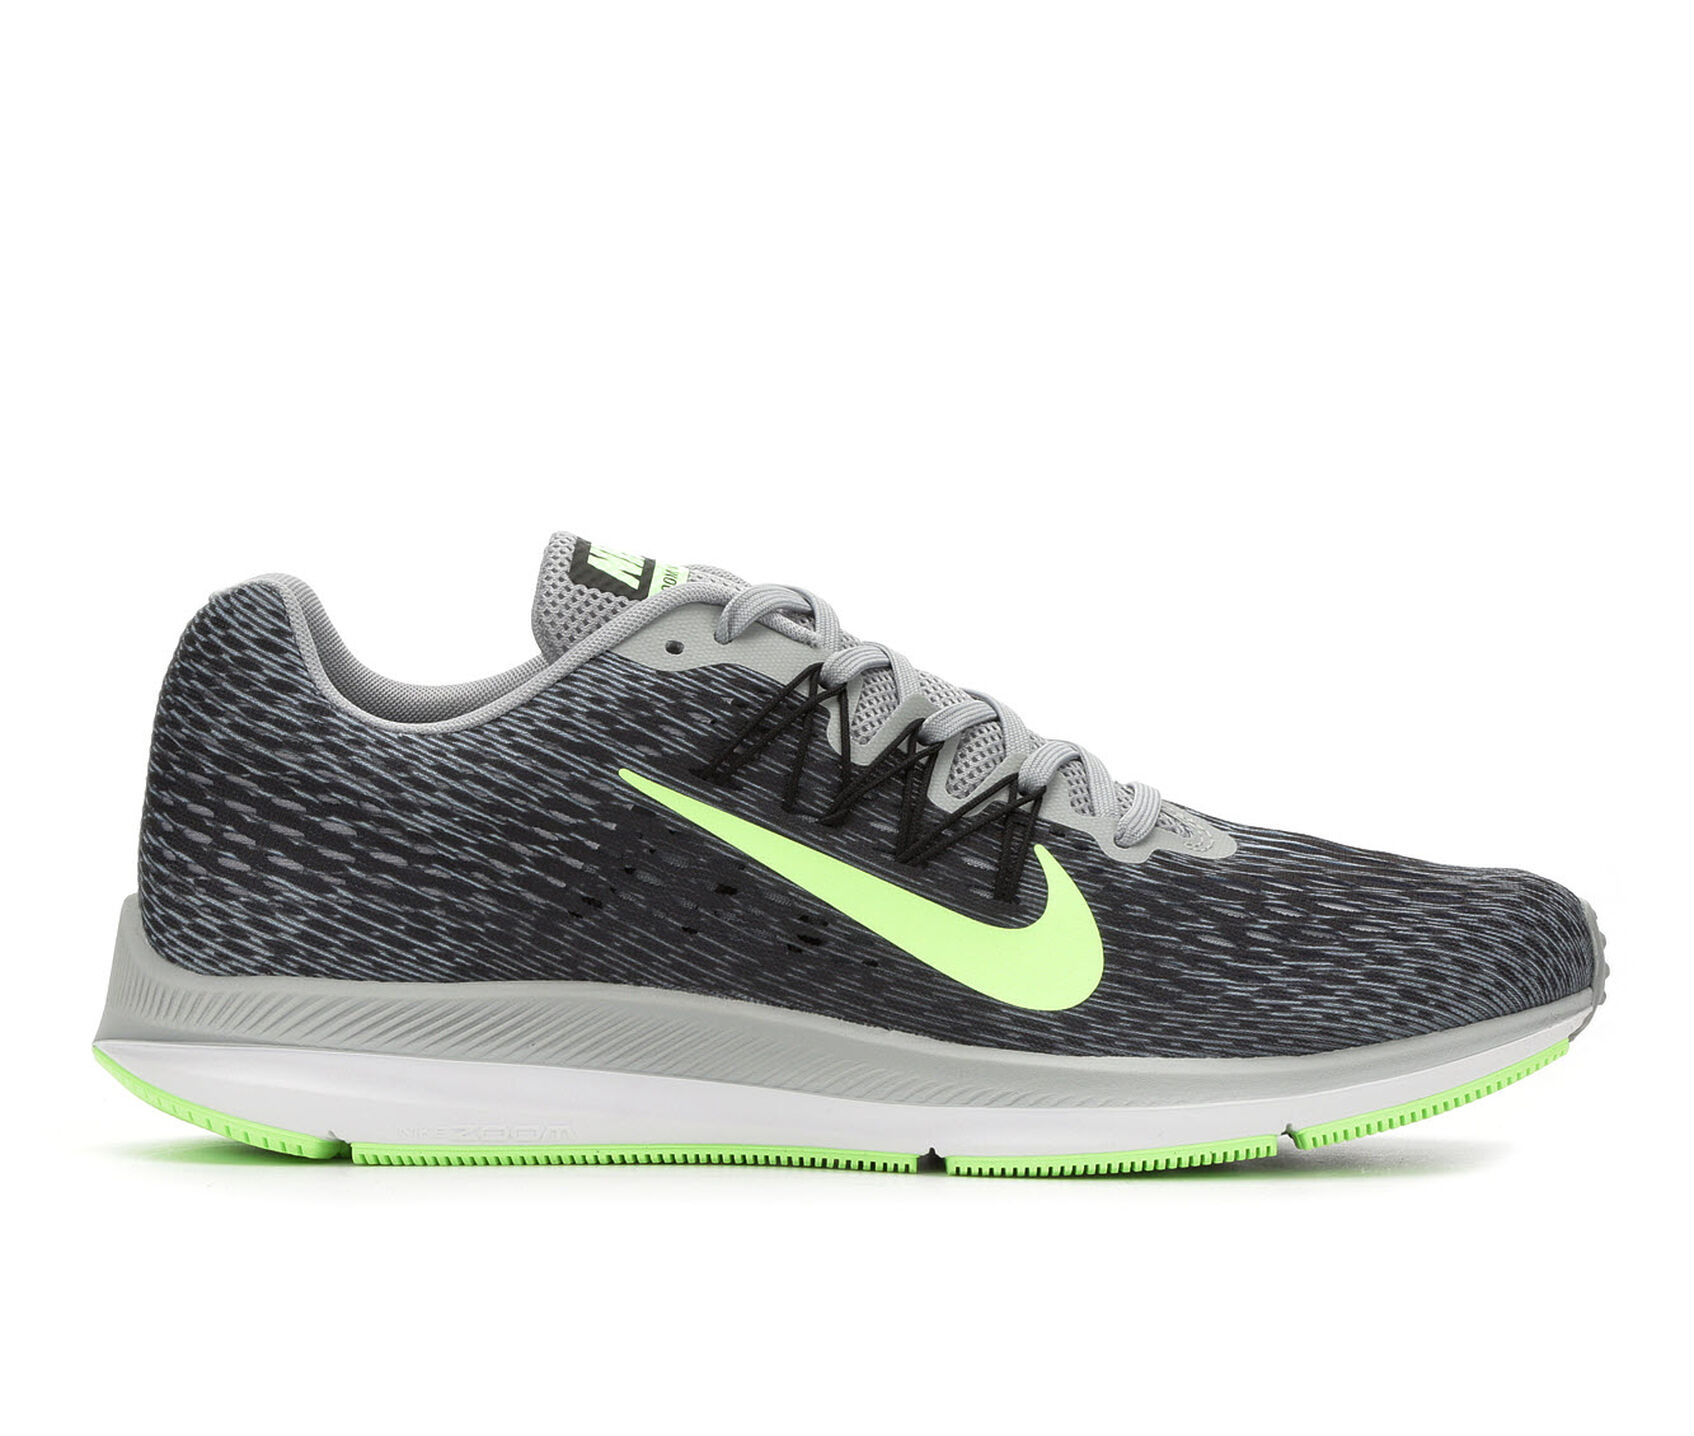 size 40 06030 1a134 Men's Nike Zoom Winflo 5 Running Shoes